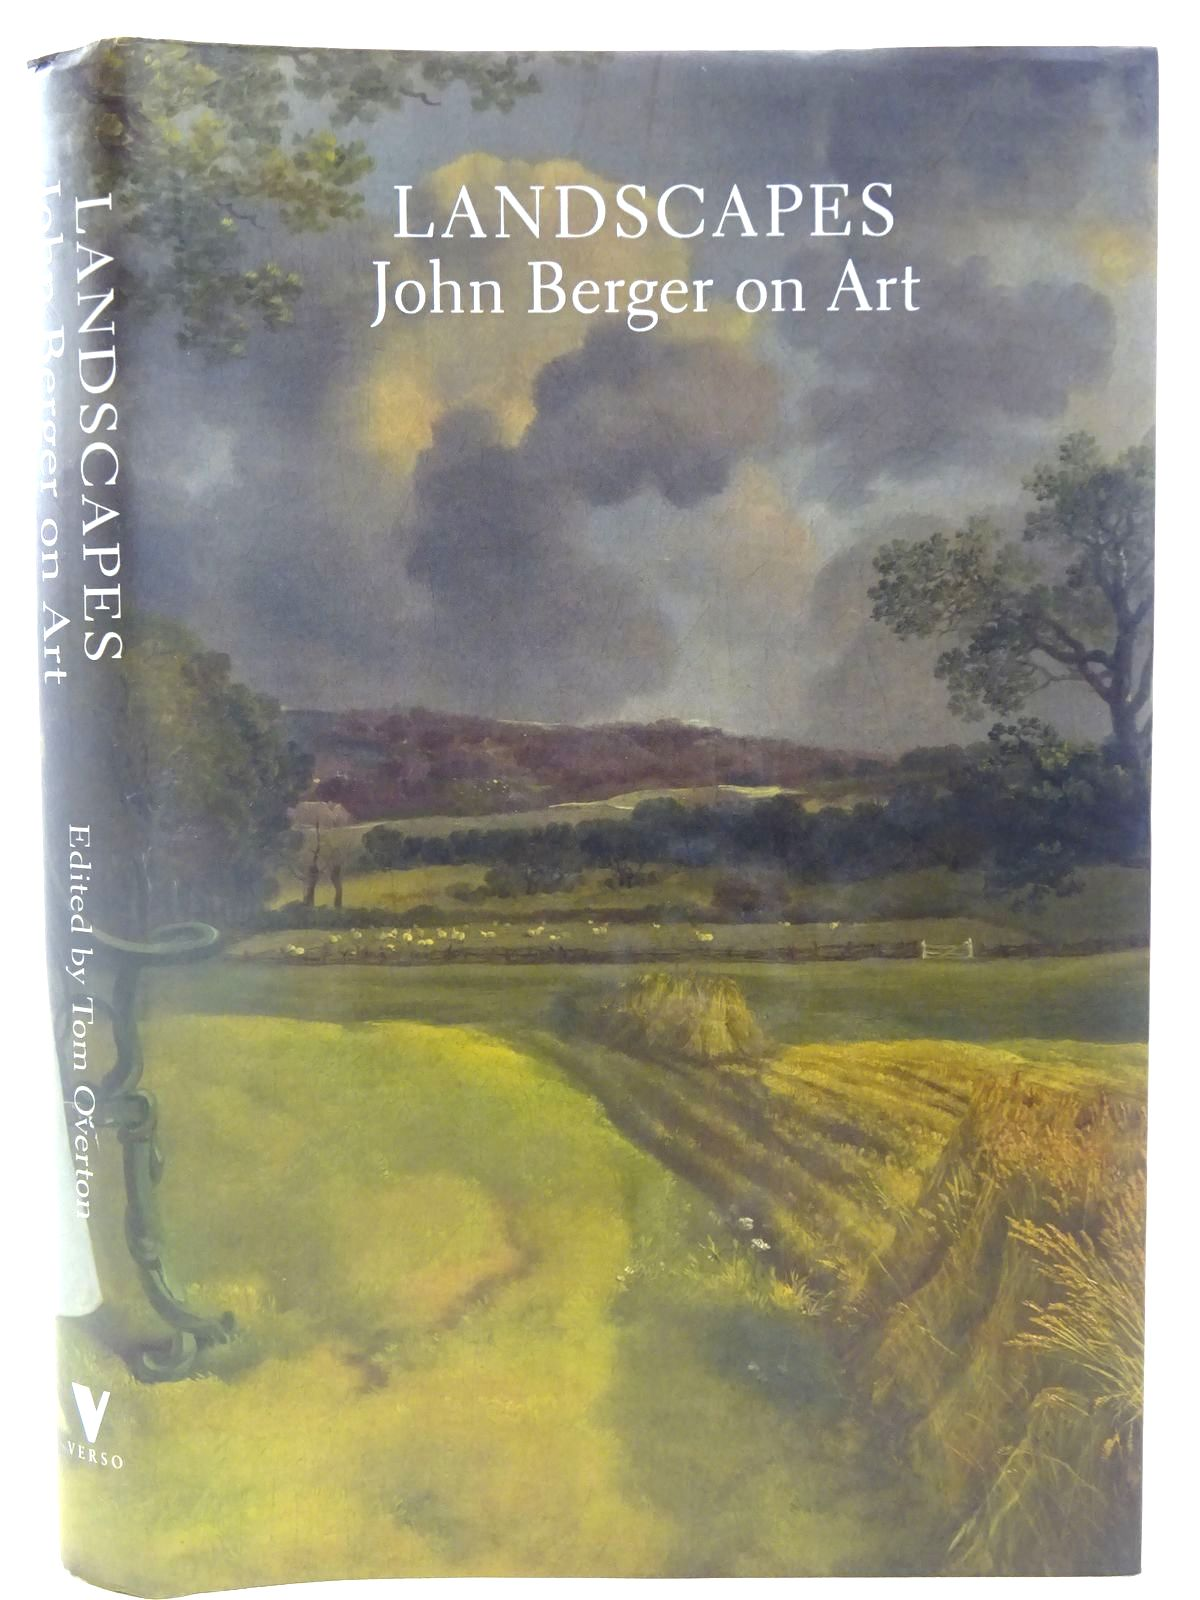 Photo of LANDSCAPES: JOHN BERGER ON ART written by Berger, John Overton, Tom published by Verso (STOCK CODE: 2127857)  for sale by Stella & Rose's Books